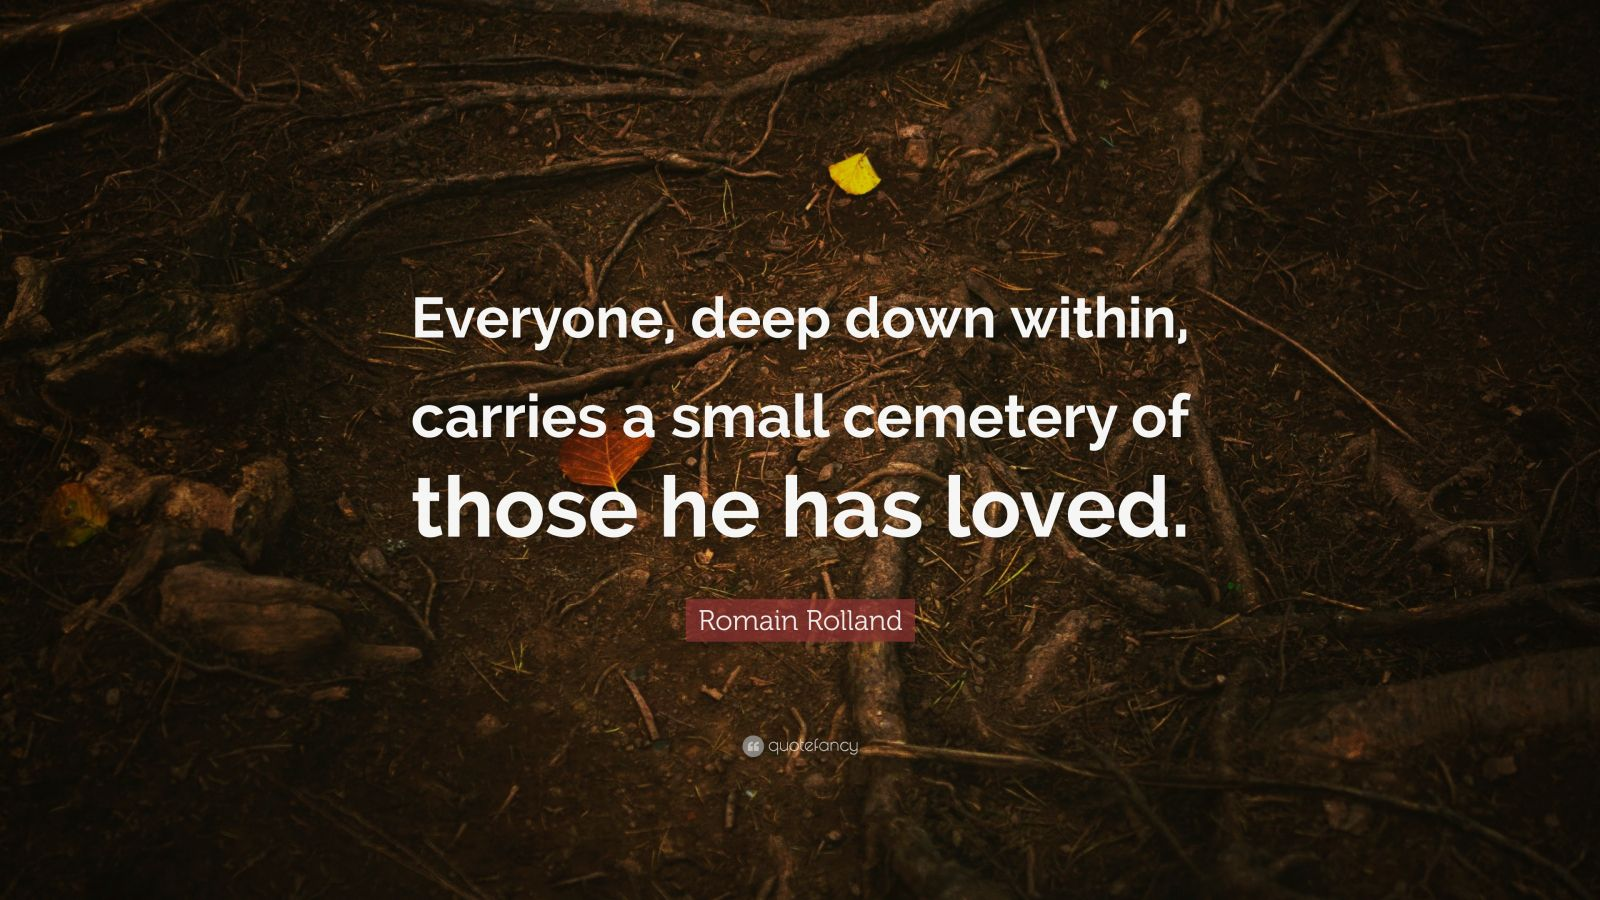 """Romain Rolland Quote: """"Everyone, deep down within, carries a small cemetery of those he has loved."""""""